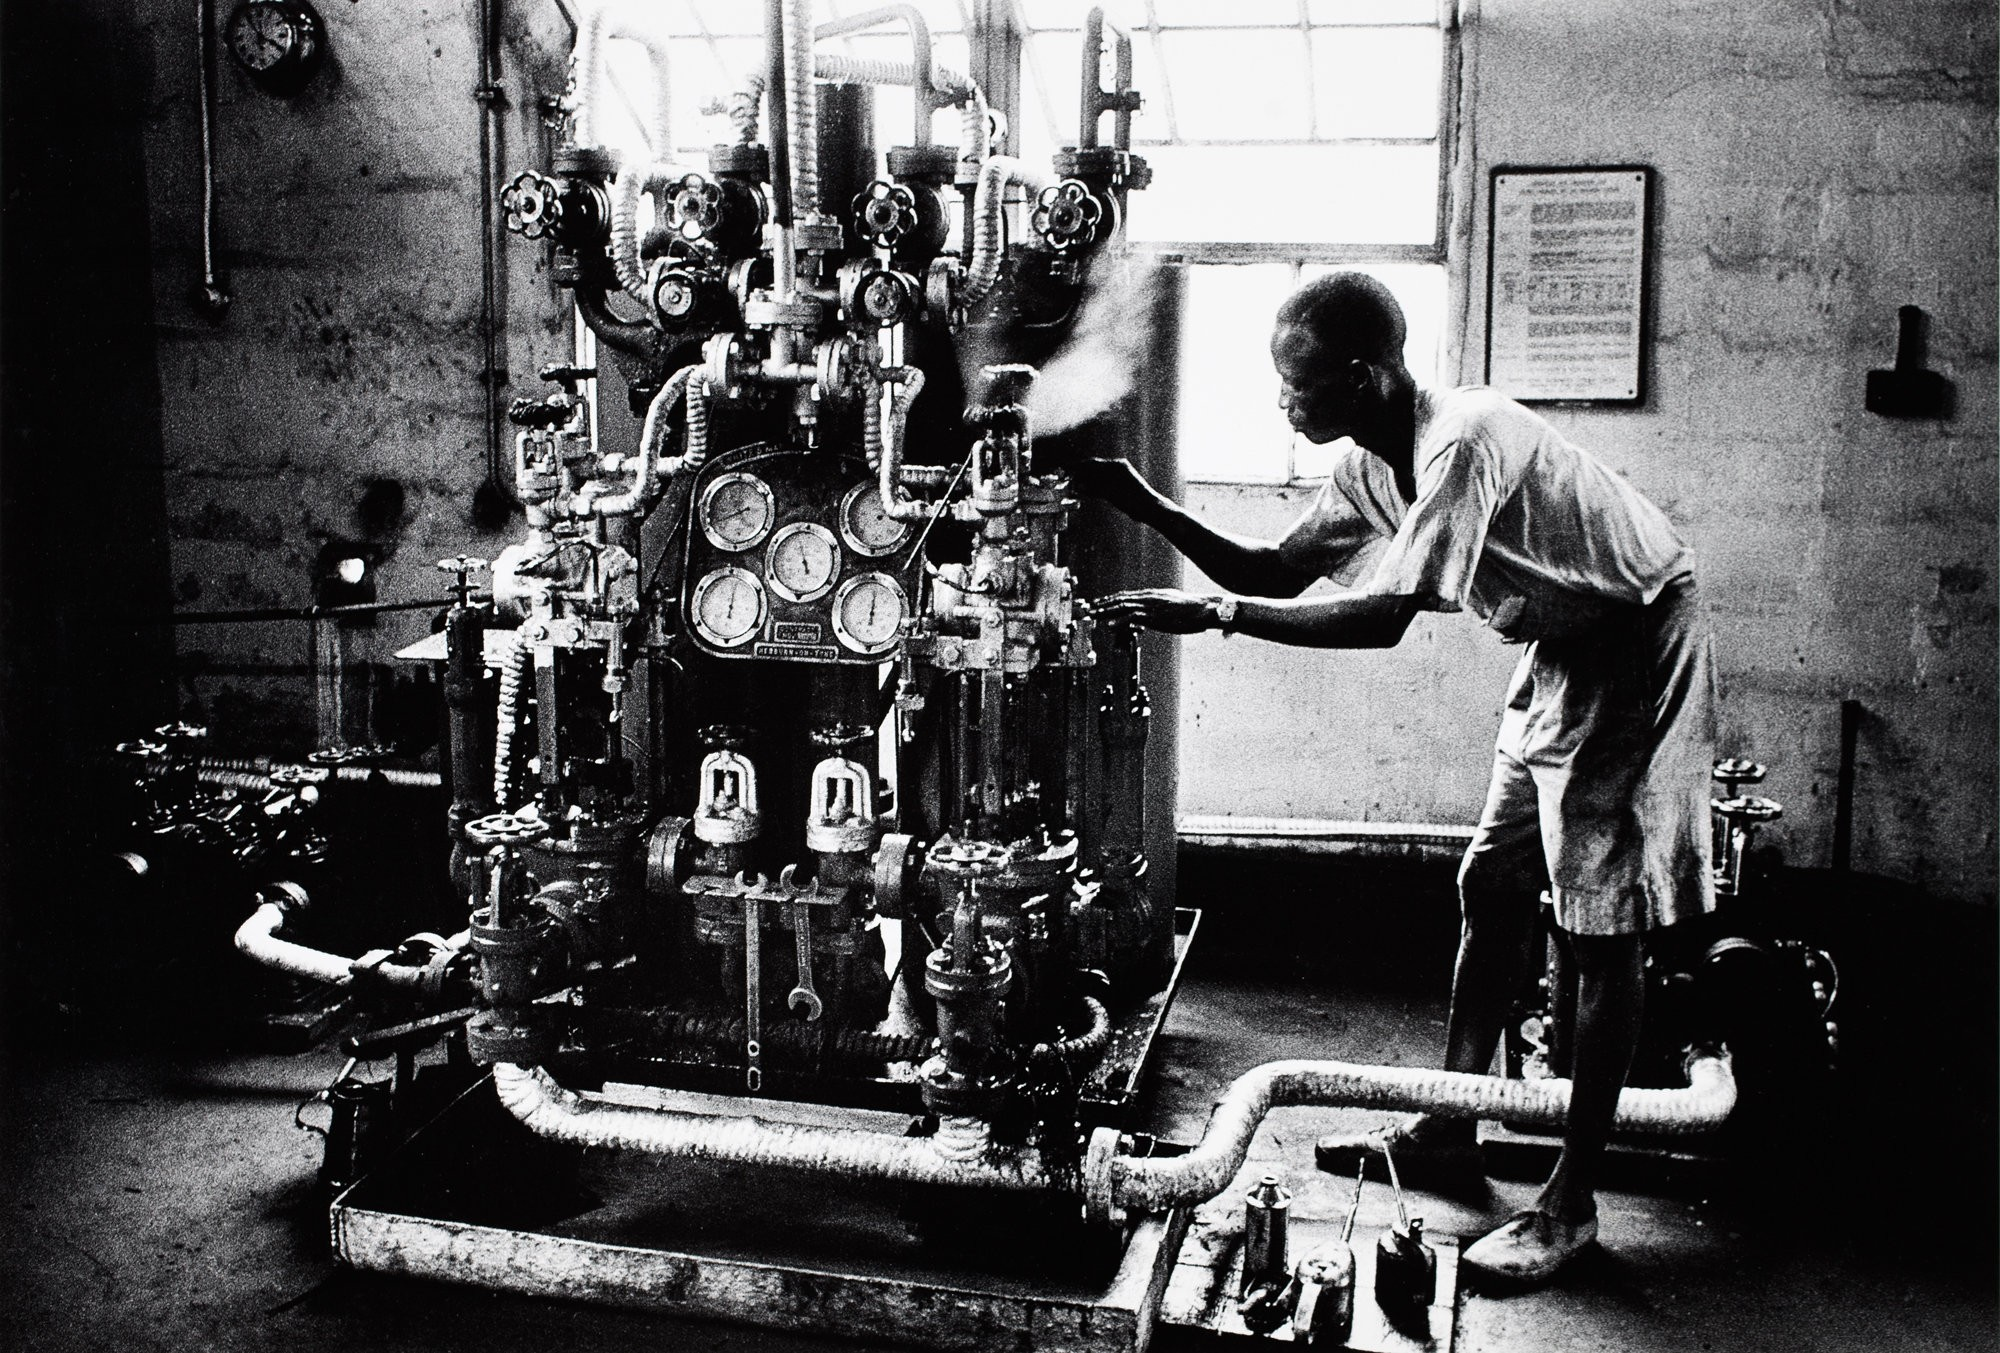 Large 2. ed van der elsken   man with machine  durban  1959